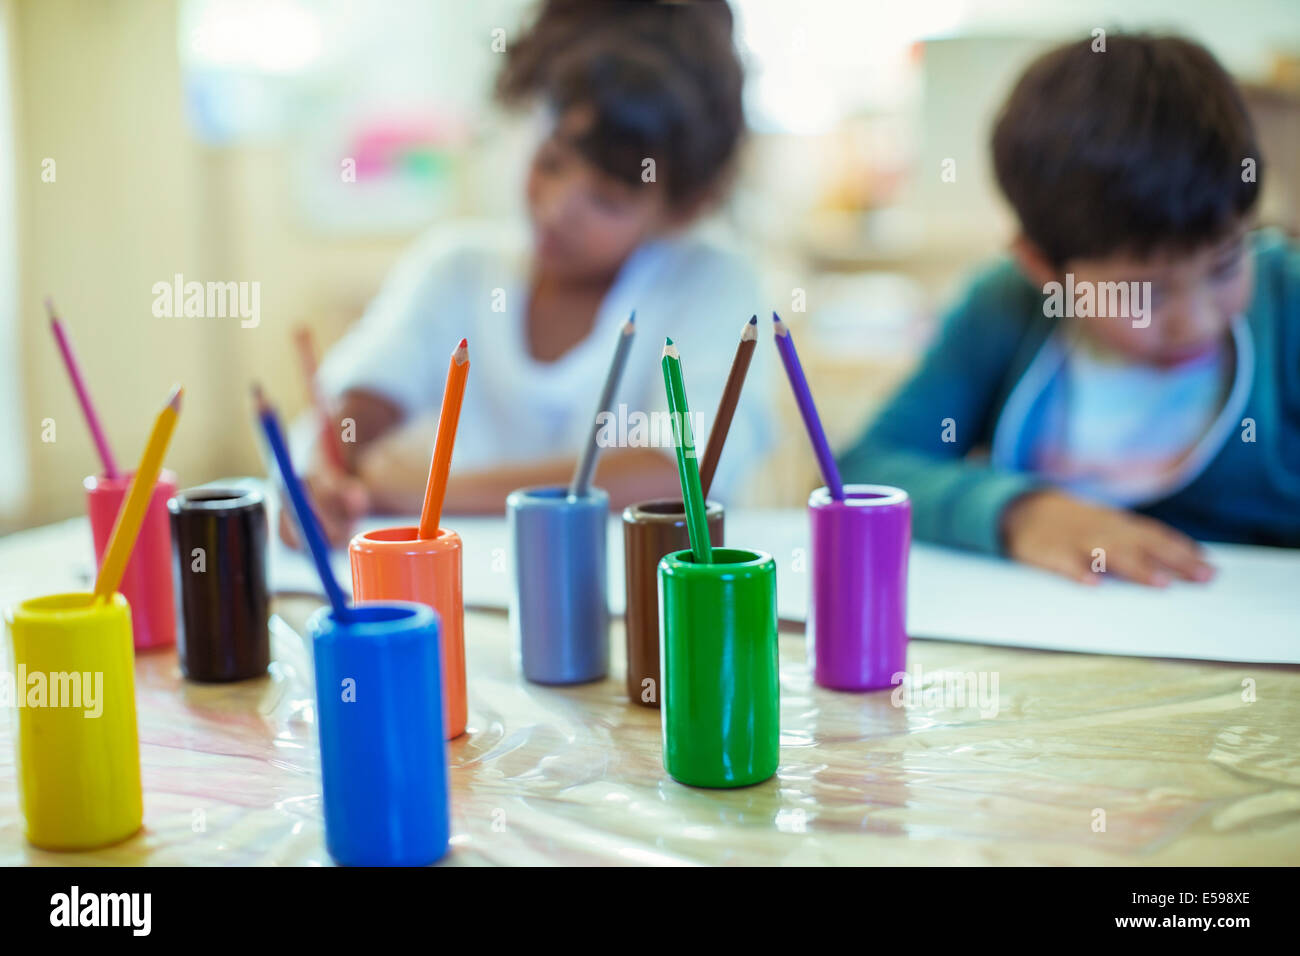 Crayons de couleur on desk in classroom Photo Stock